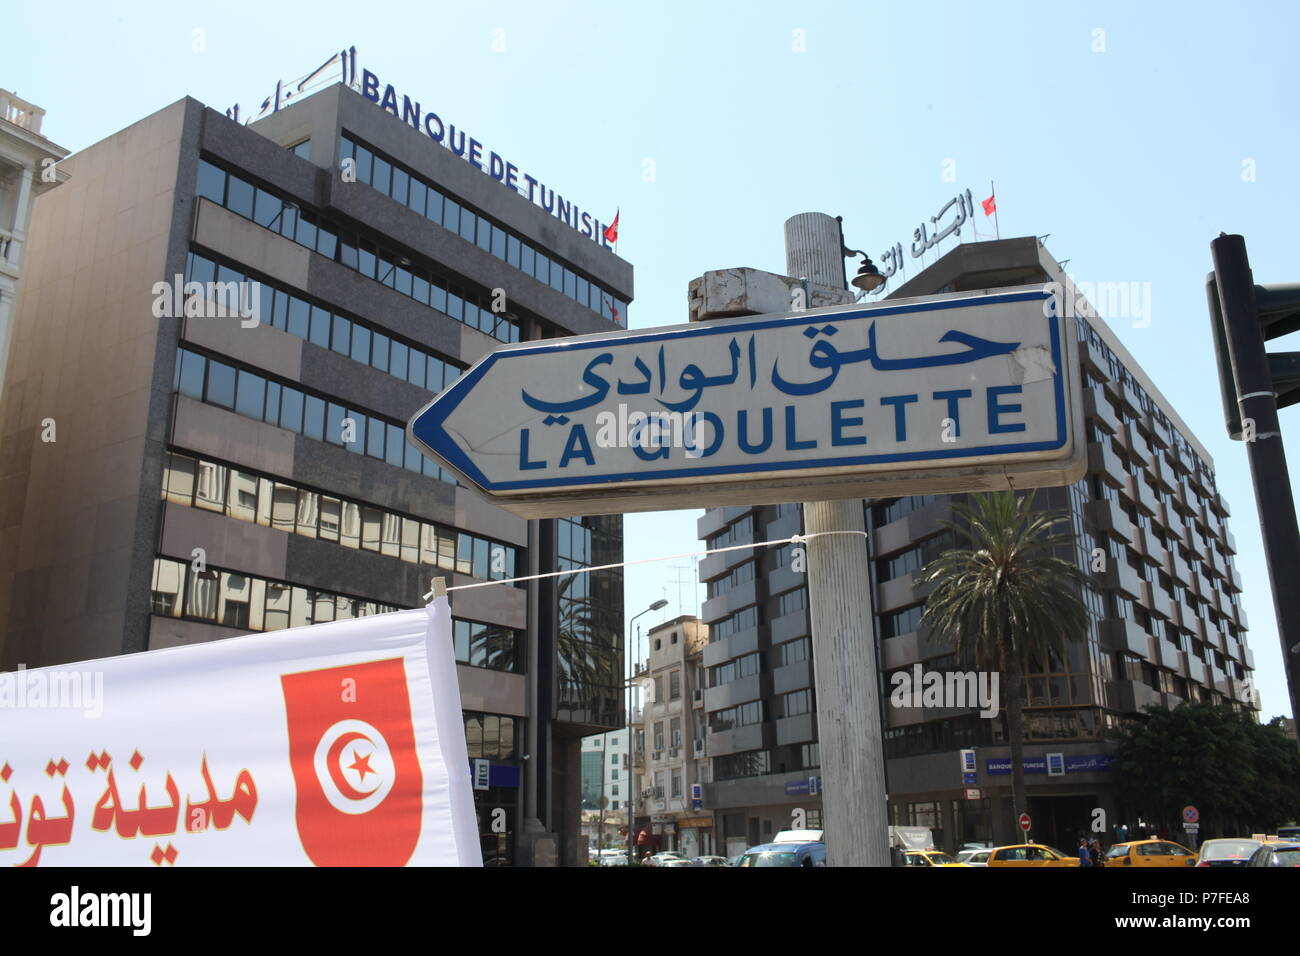 Popular sub-urban area of the Tunisian capital La Goulette (Halq El Oued) known as the home town of the movie star Claudia Cardinale - Stock Image